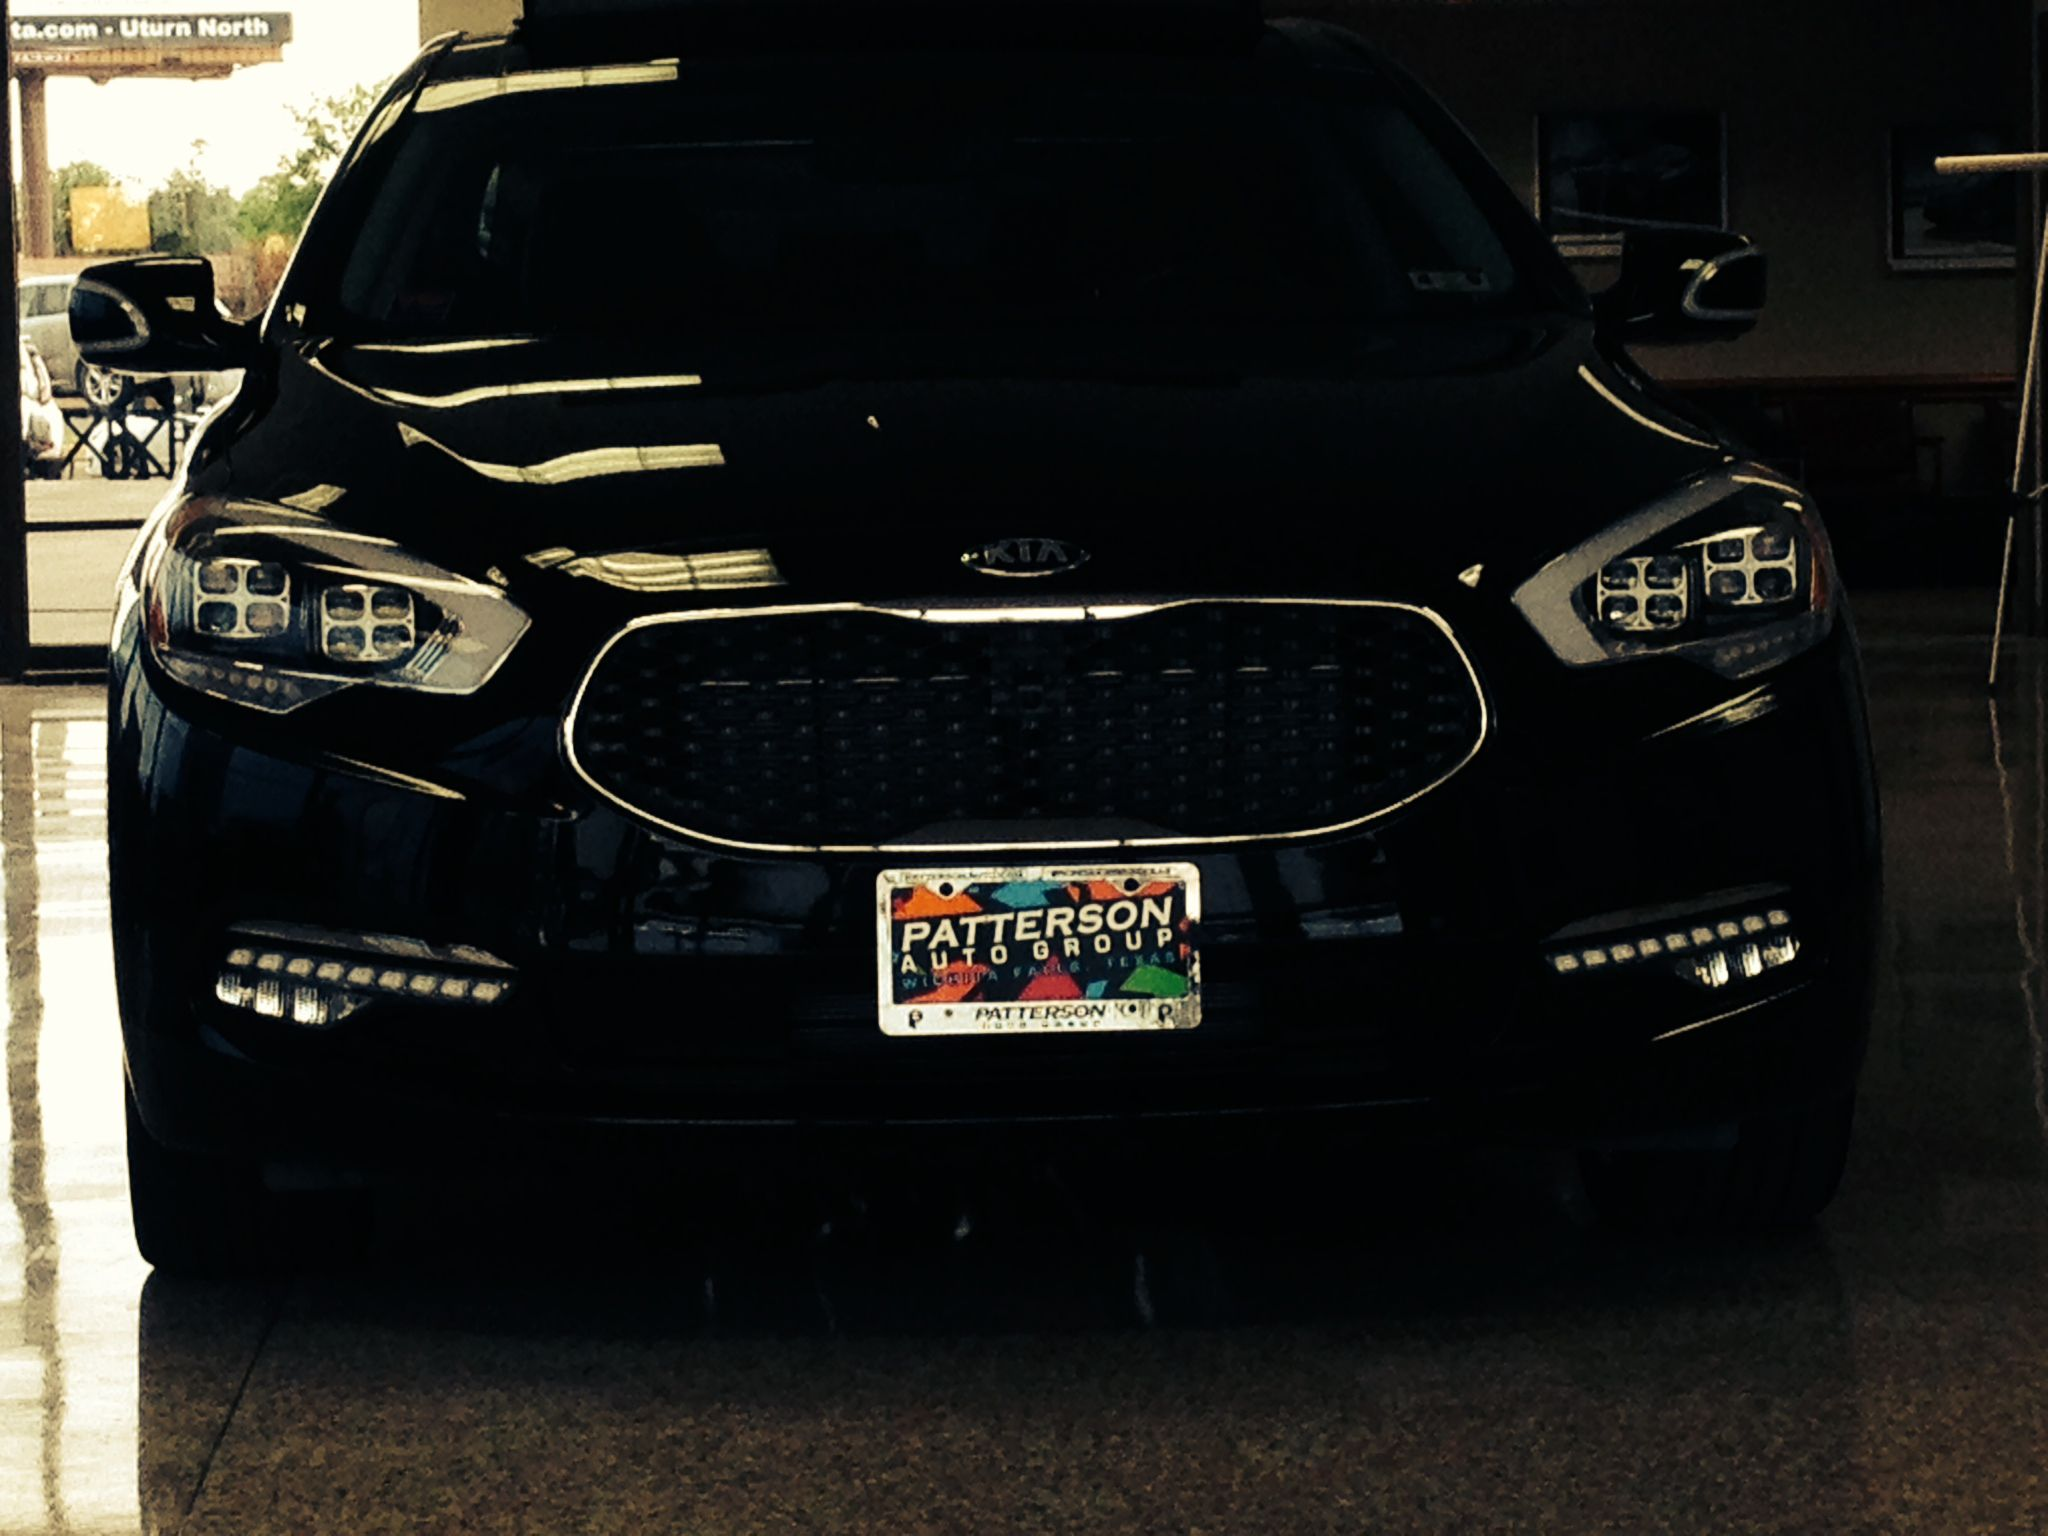 Clean front view of the headlights and grille on the new kia k900